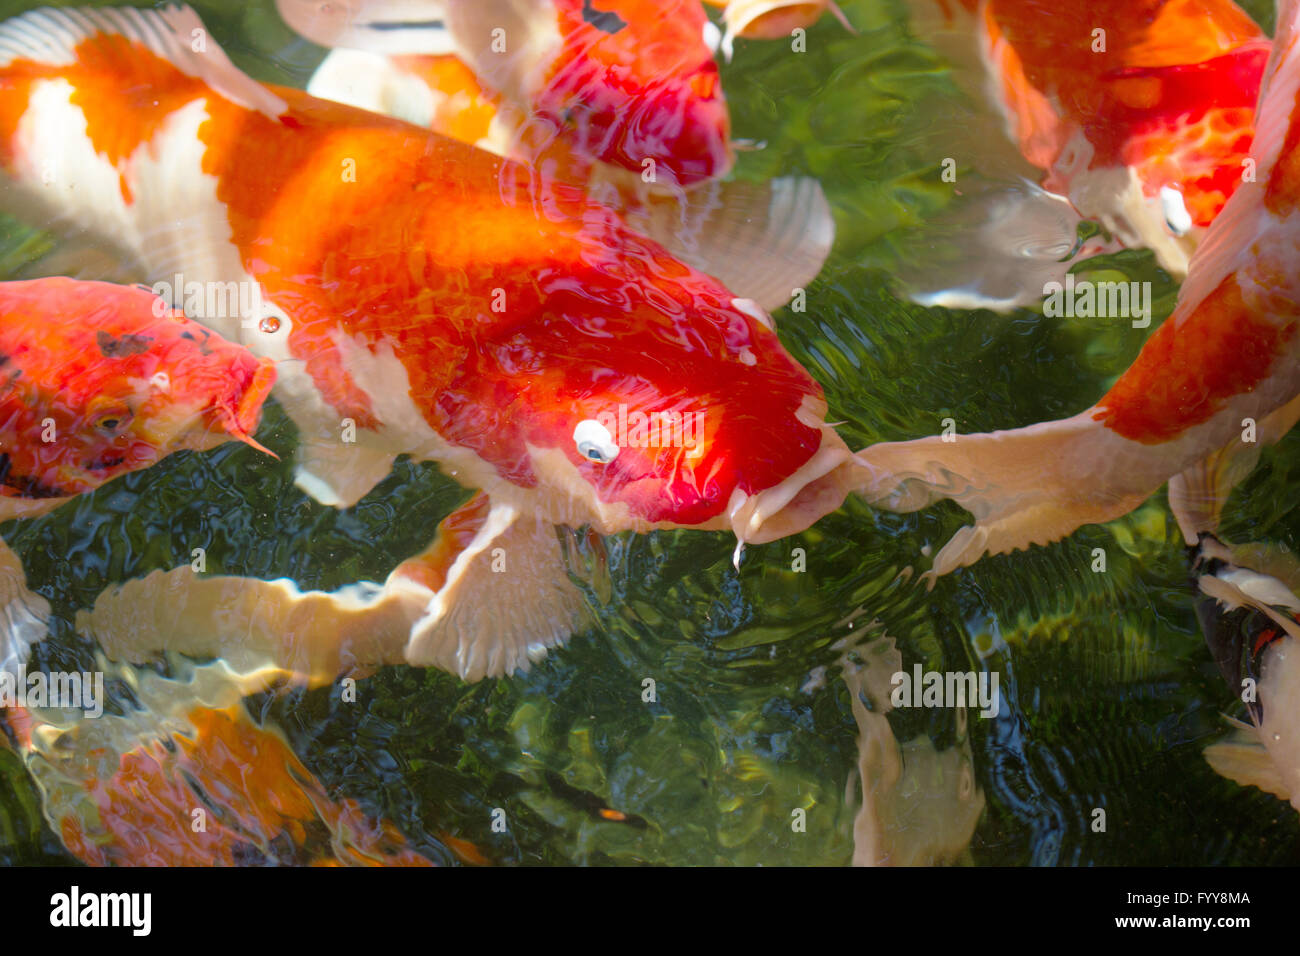 carp Koi fish orange color in pond Stock Photo: 103247098 - Alamy